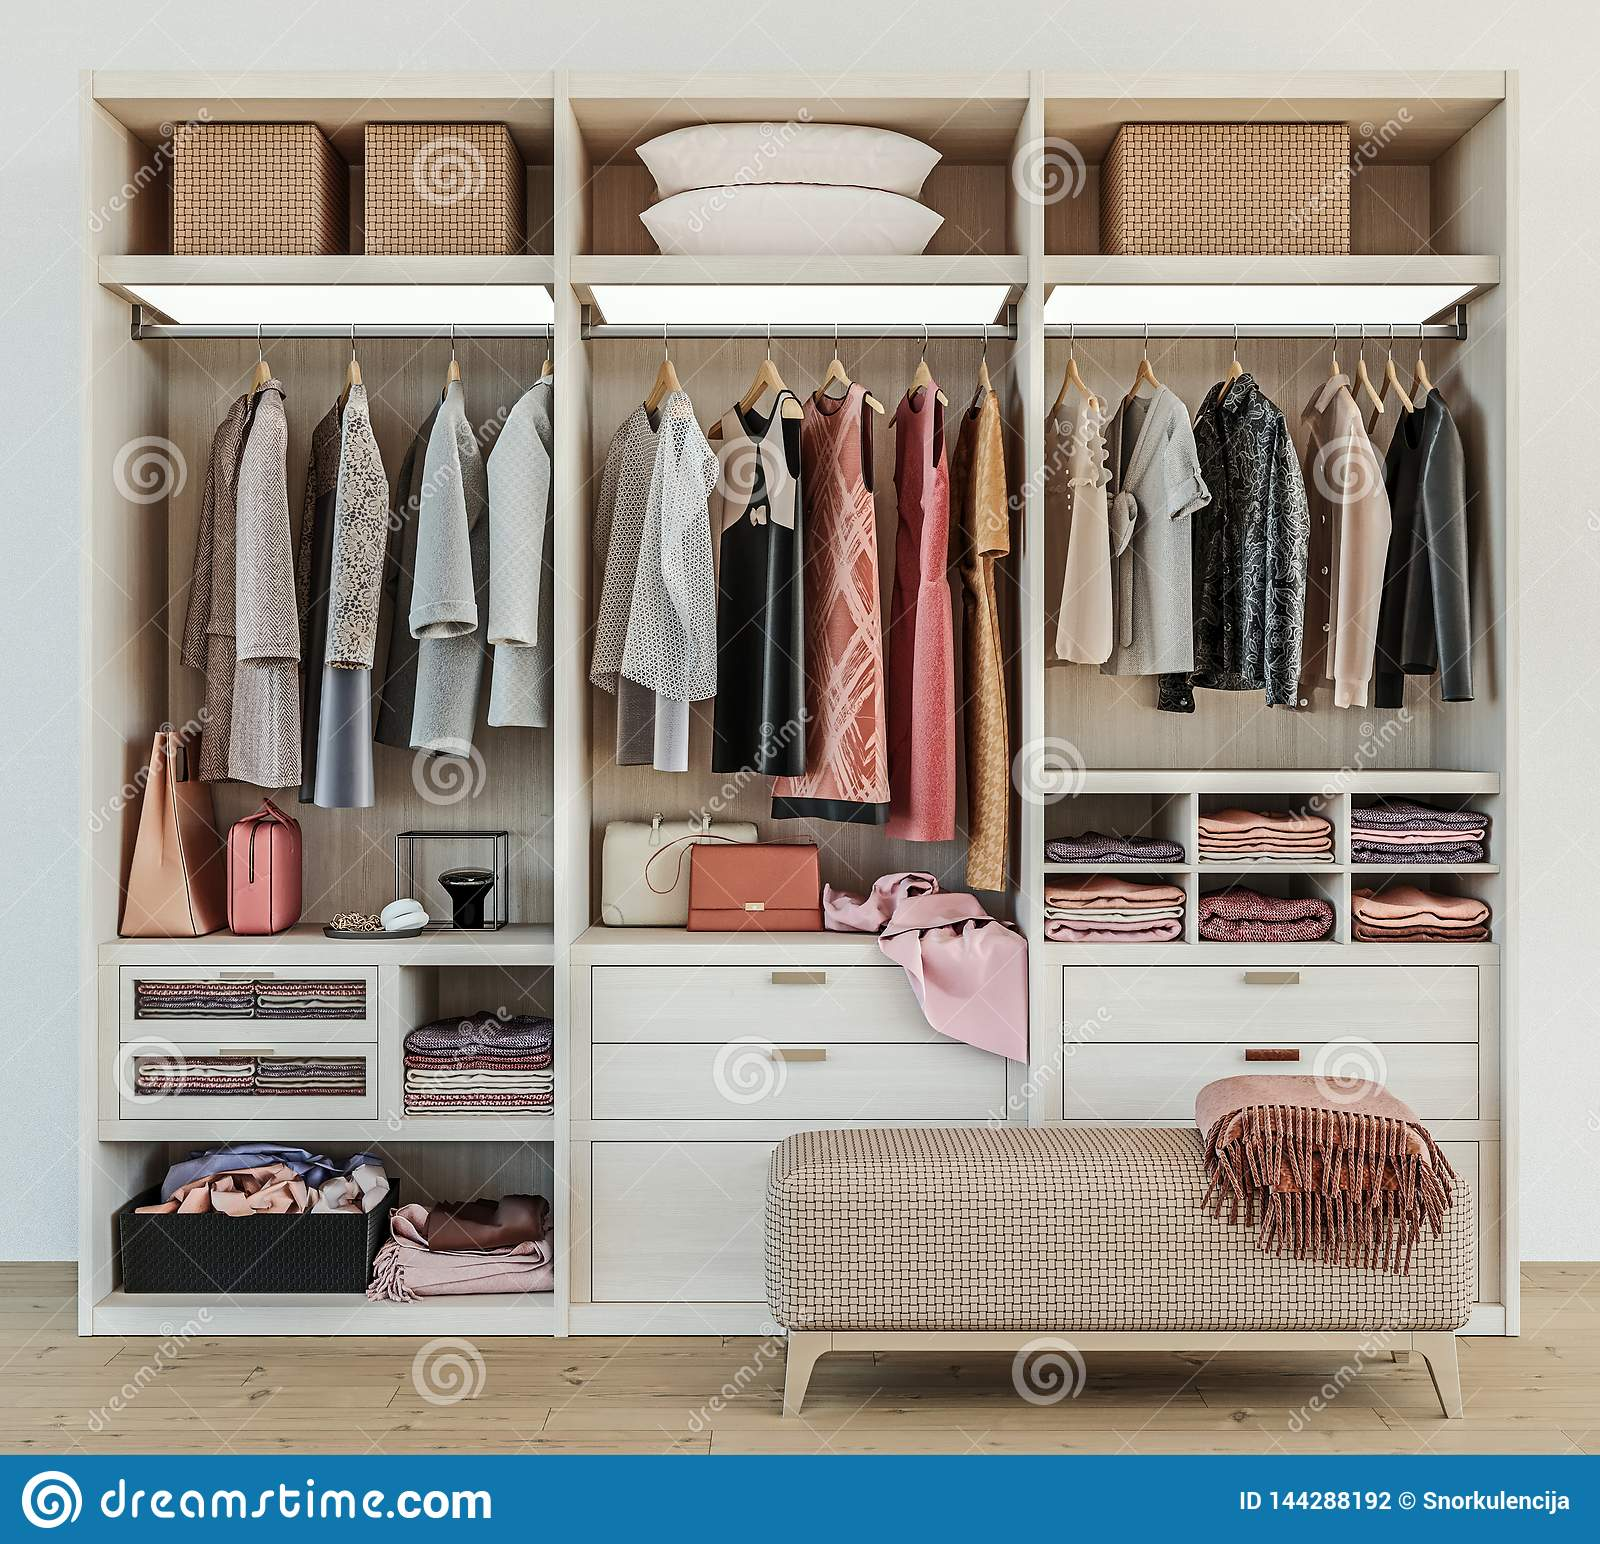 60 324 Closet Photos Free Royalty Free Stock Photos From Dreamstime